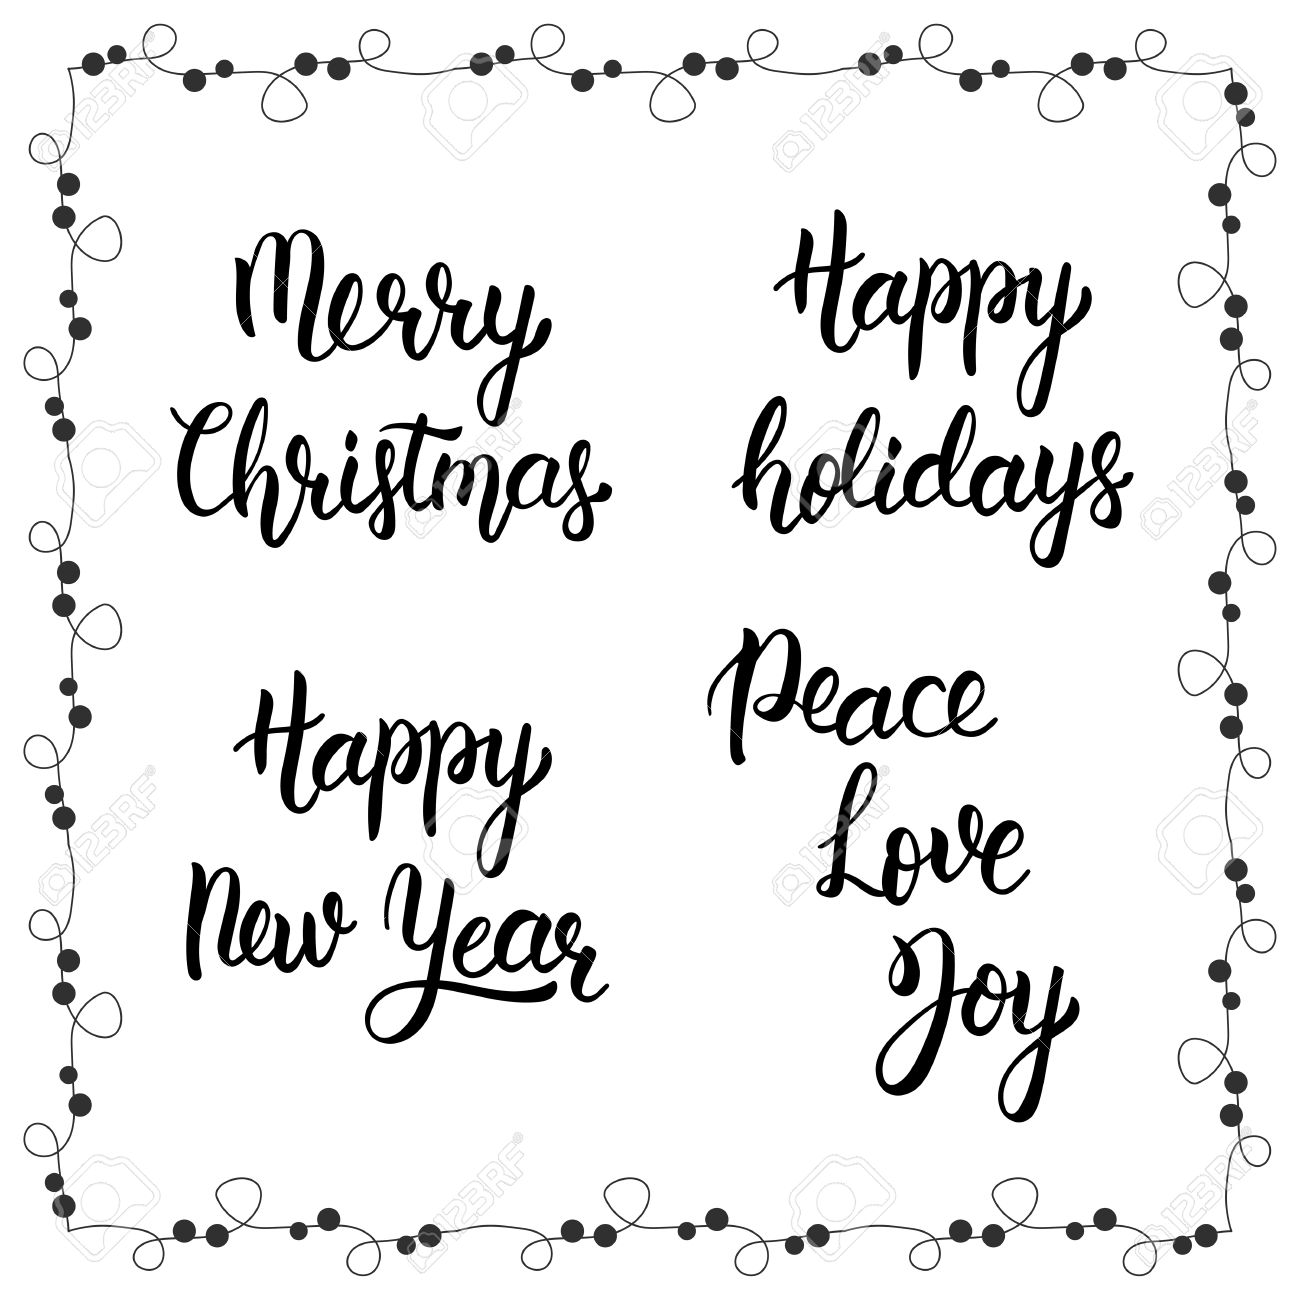 Peace Love Joy Quotes Christmas Calligraphy Phrasesmerry Christmashappy New Year